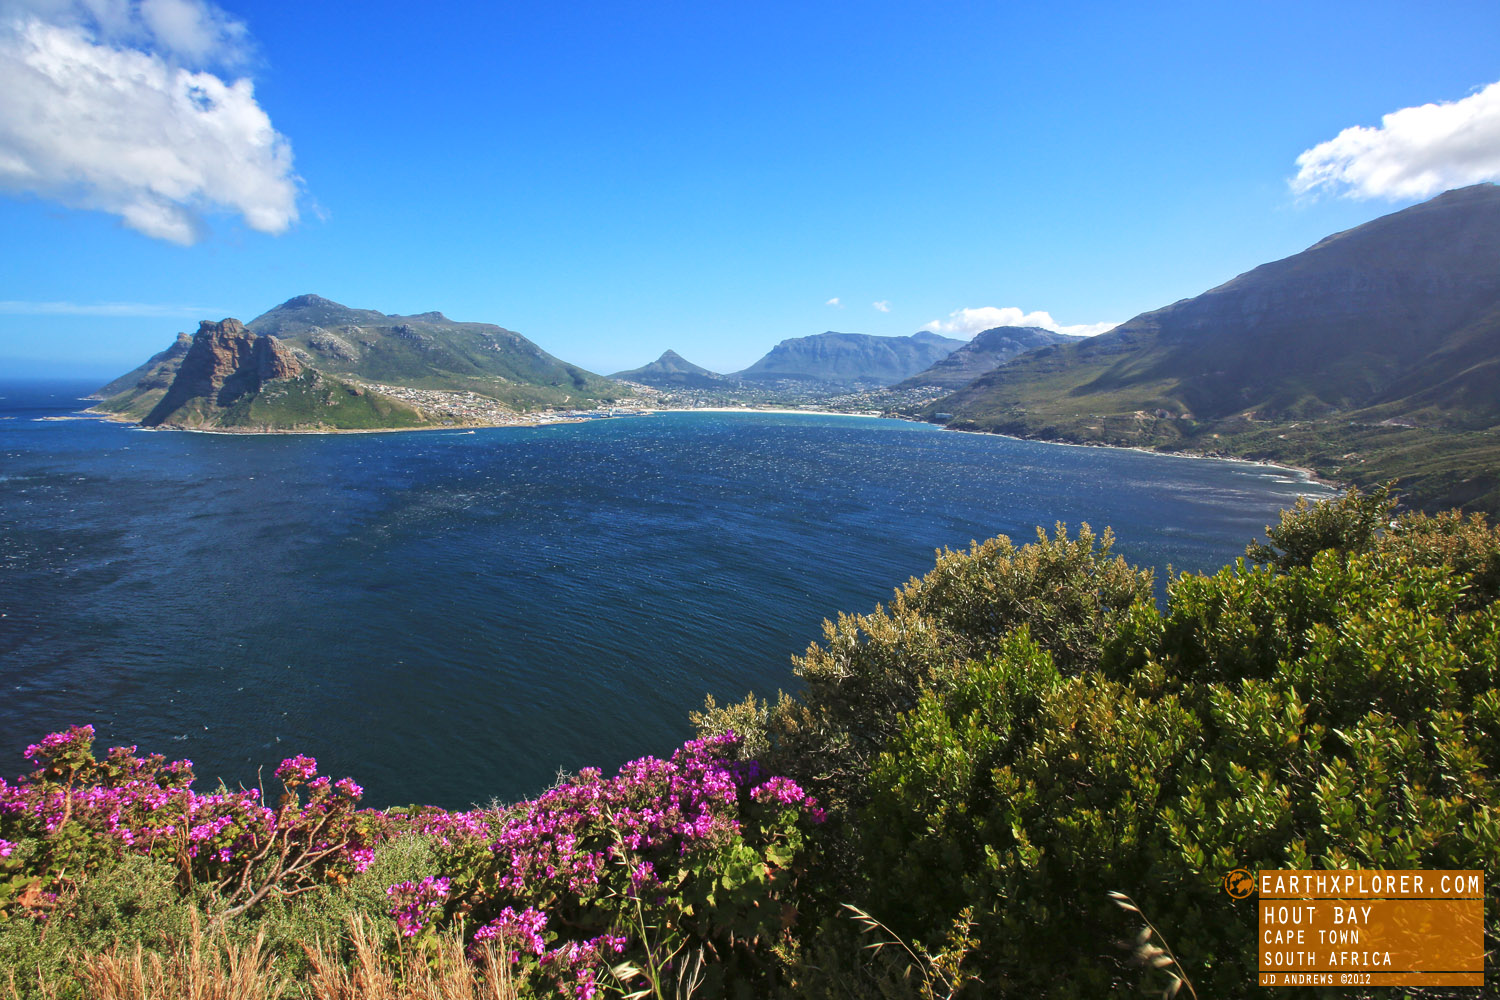 Hout Bay is called the Heart of the Cape. Halfway between Cape Town and Cape Point. Named by Dutch explorers, literally translated means Wood Bay.